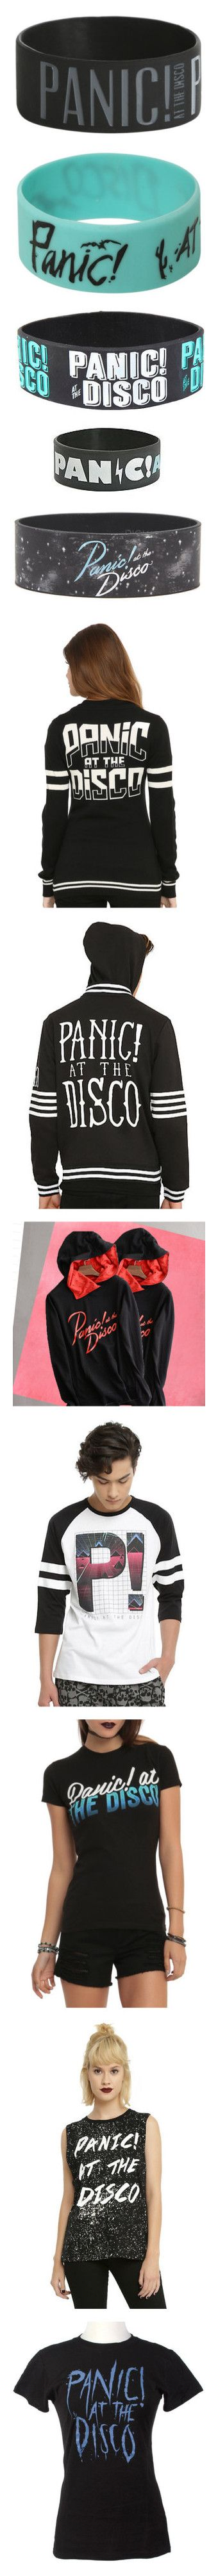 """Panic! At The Disco"" by itsstacyguys ❤ liked on Polyvore featuring jewelry, bracelets, accessories, rubber bracelets, bands, rubber bangles, rubber jewelry, disco jewelry, panic at the disco and wristbands"